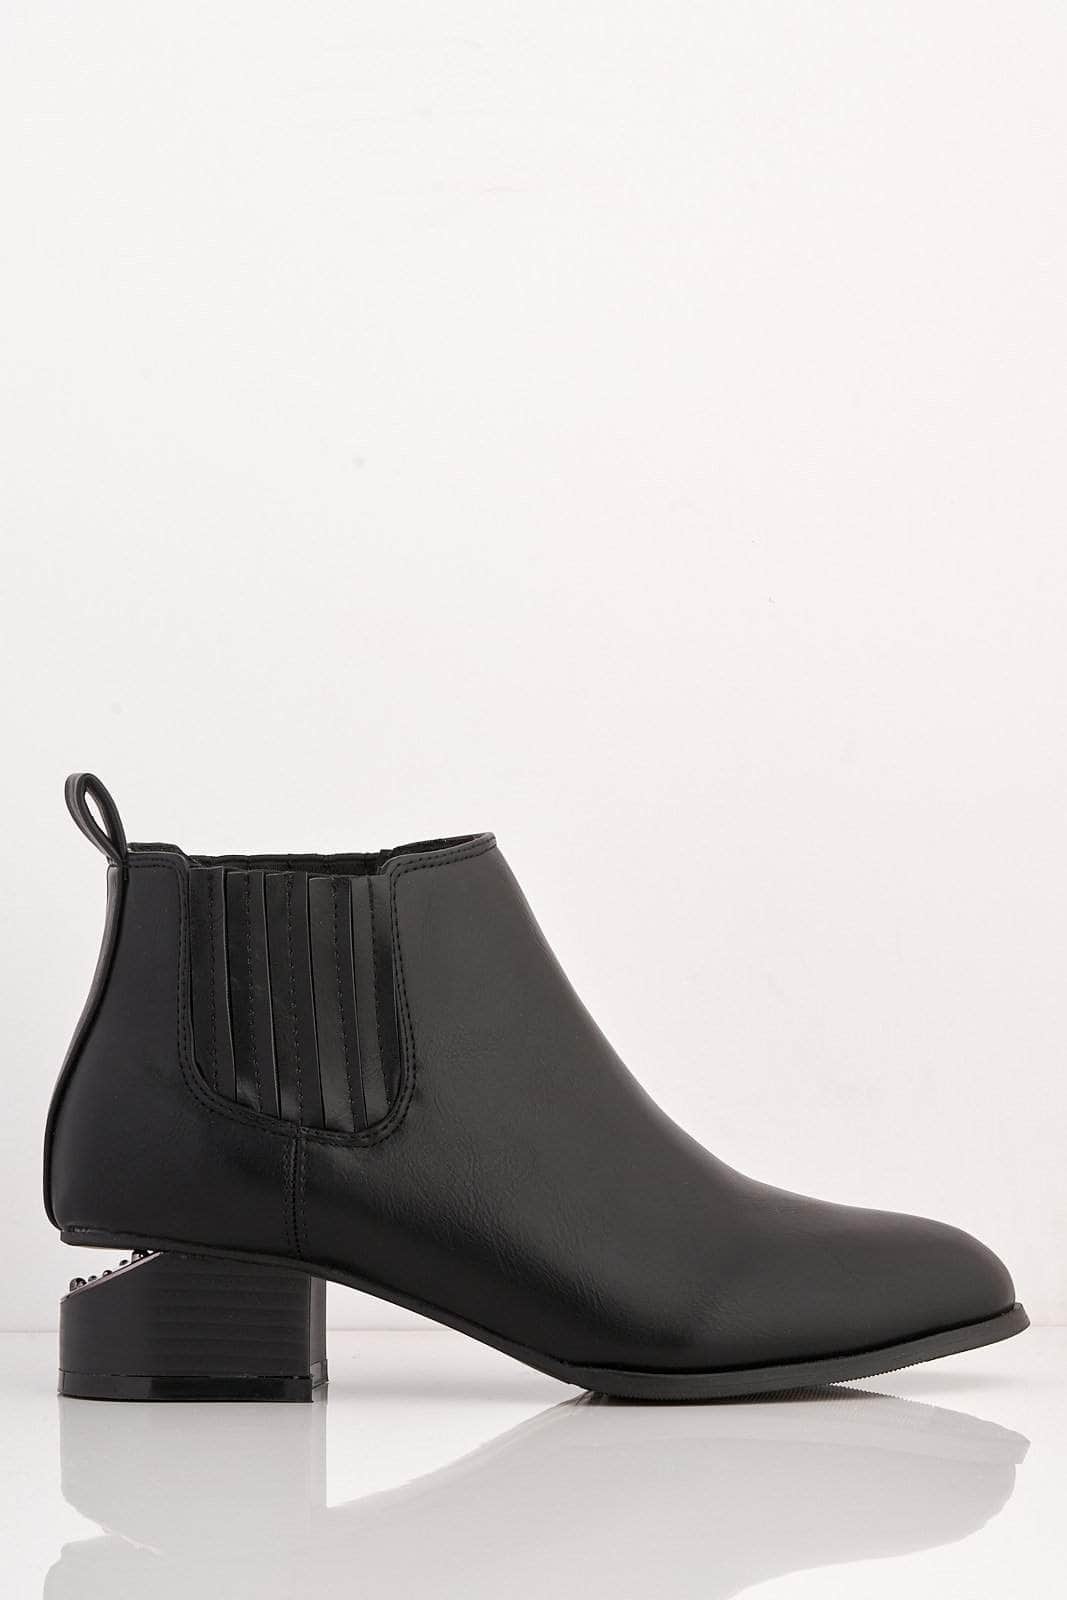 Black Pu Ankle Boots with Cut Out Heel